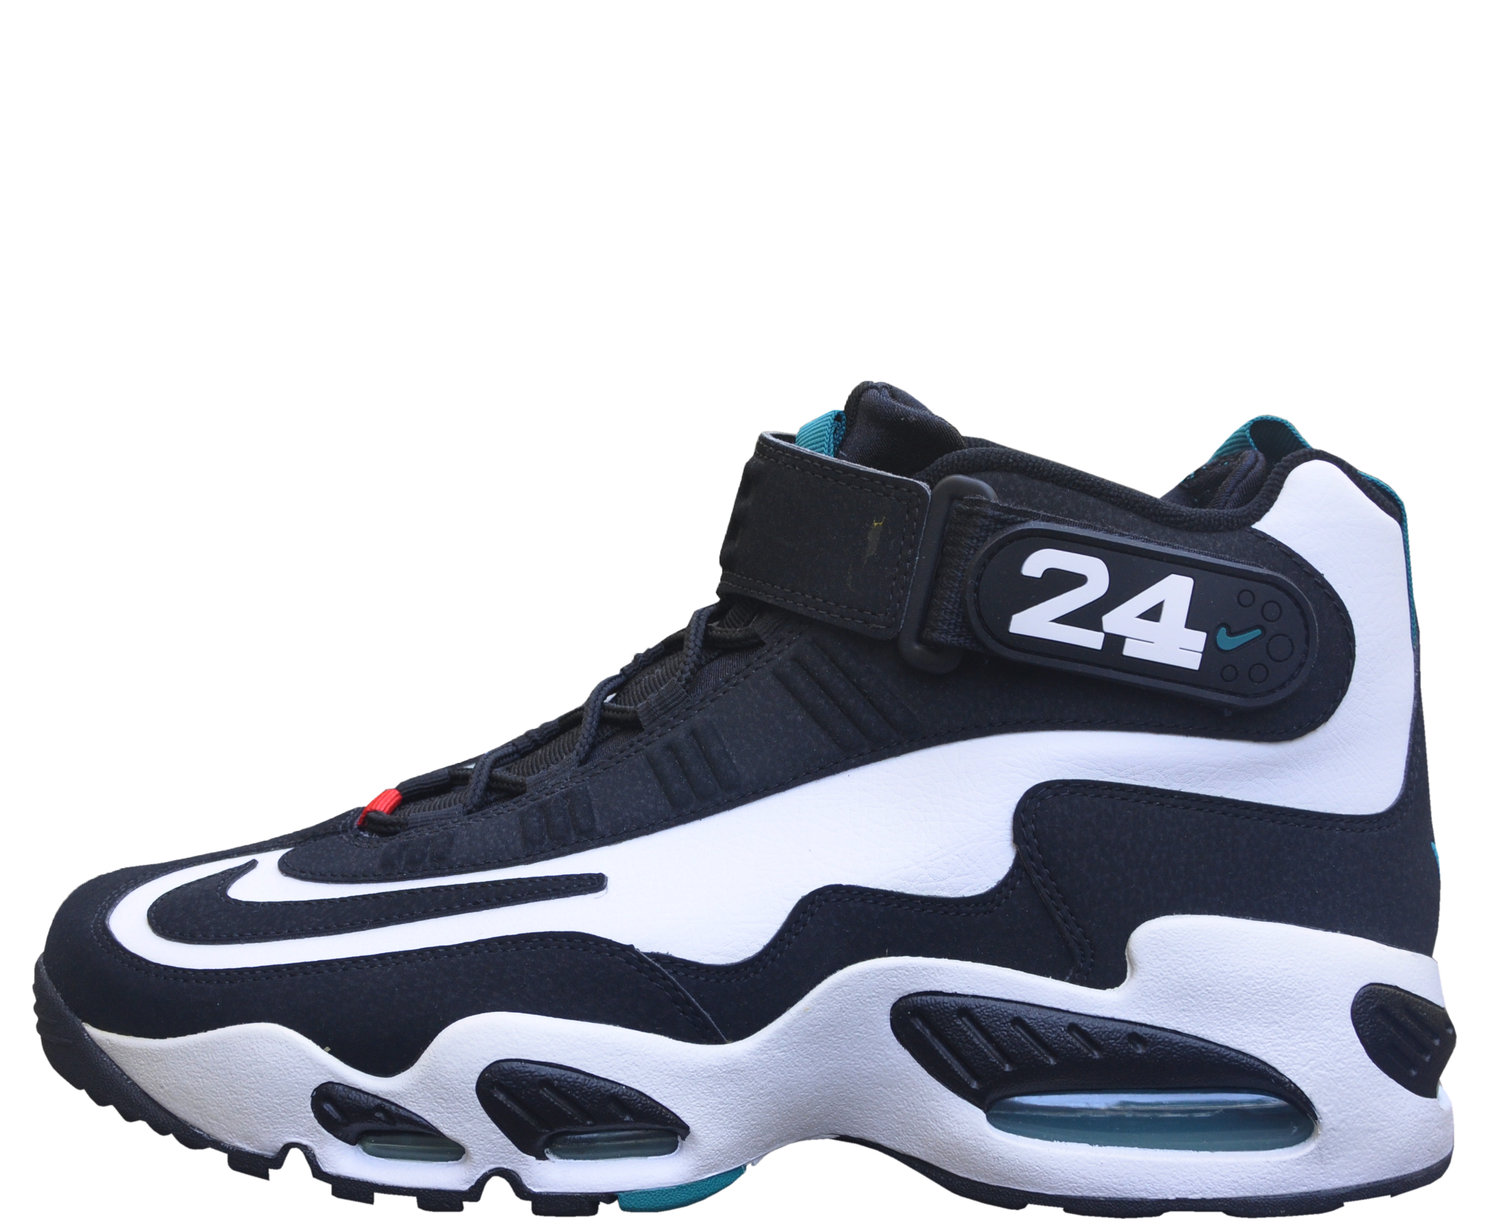 9ac3271fd6 Nike Air Griffey Max 1 Freshwater (Size 10.5) DS — Roots